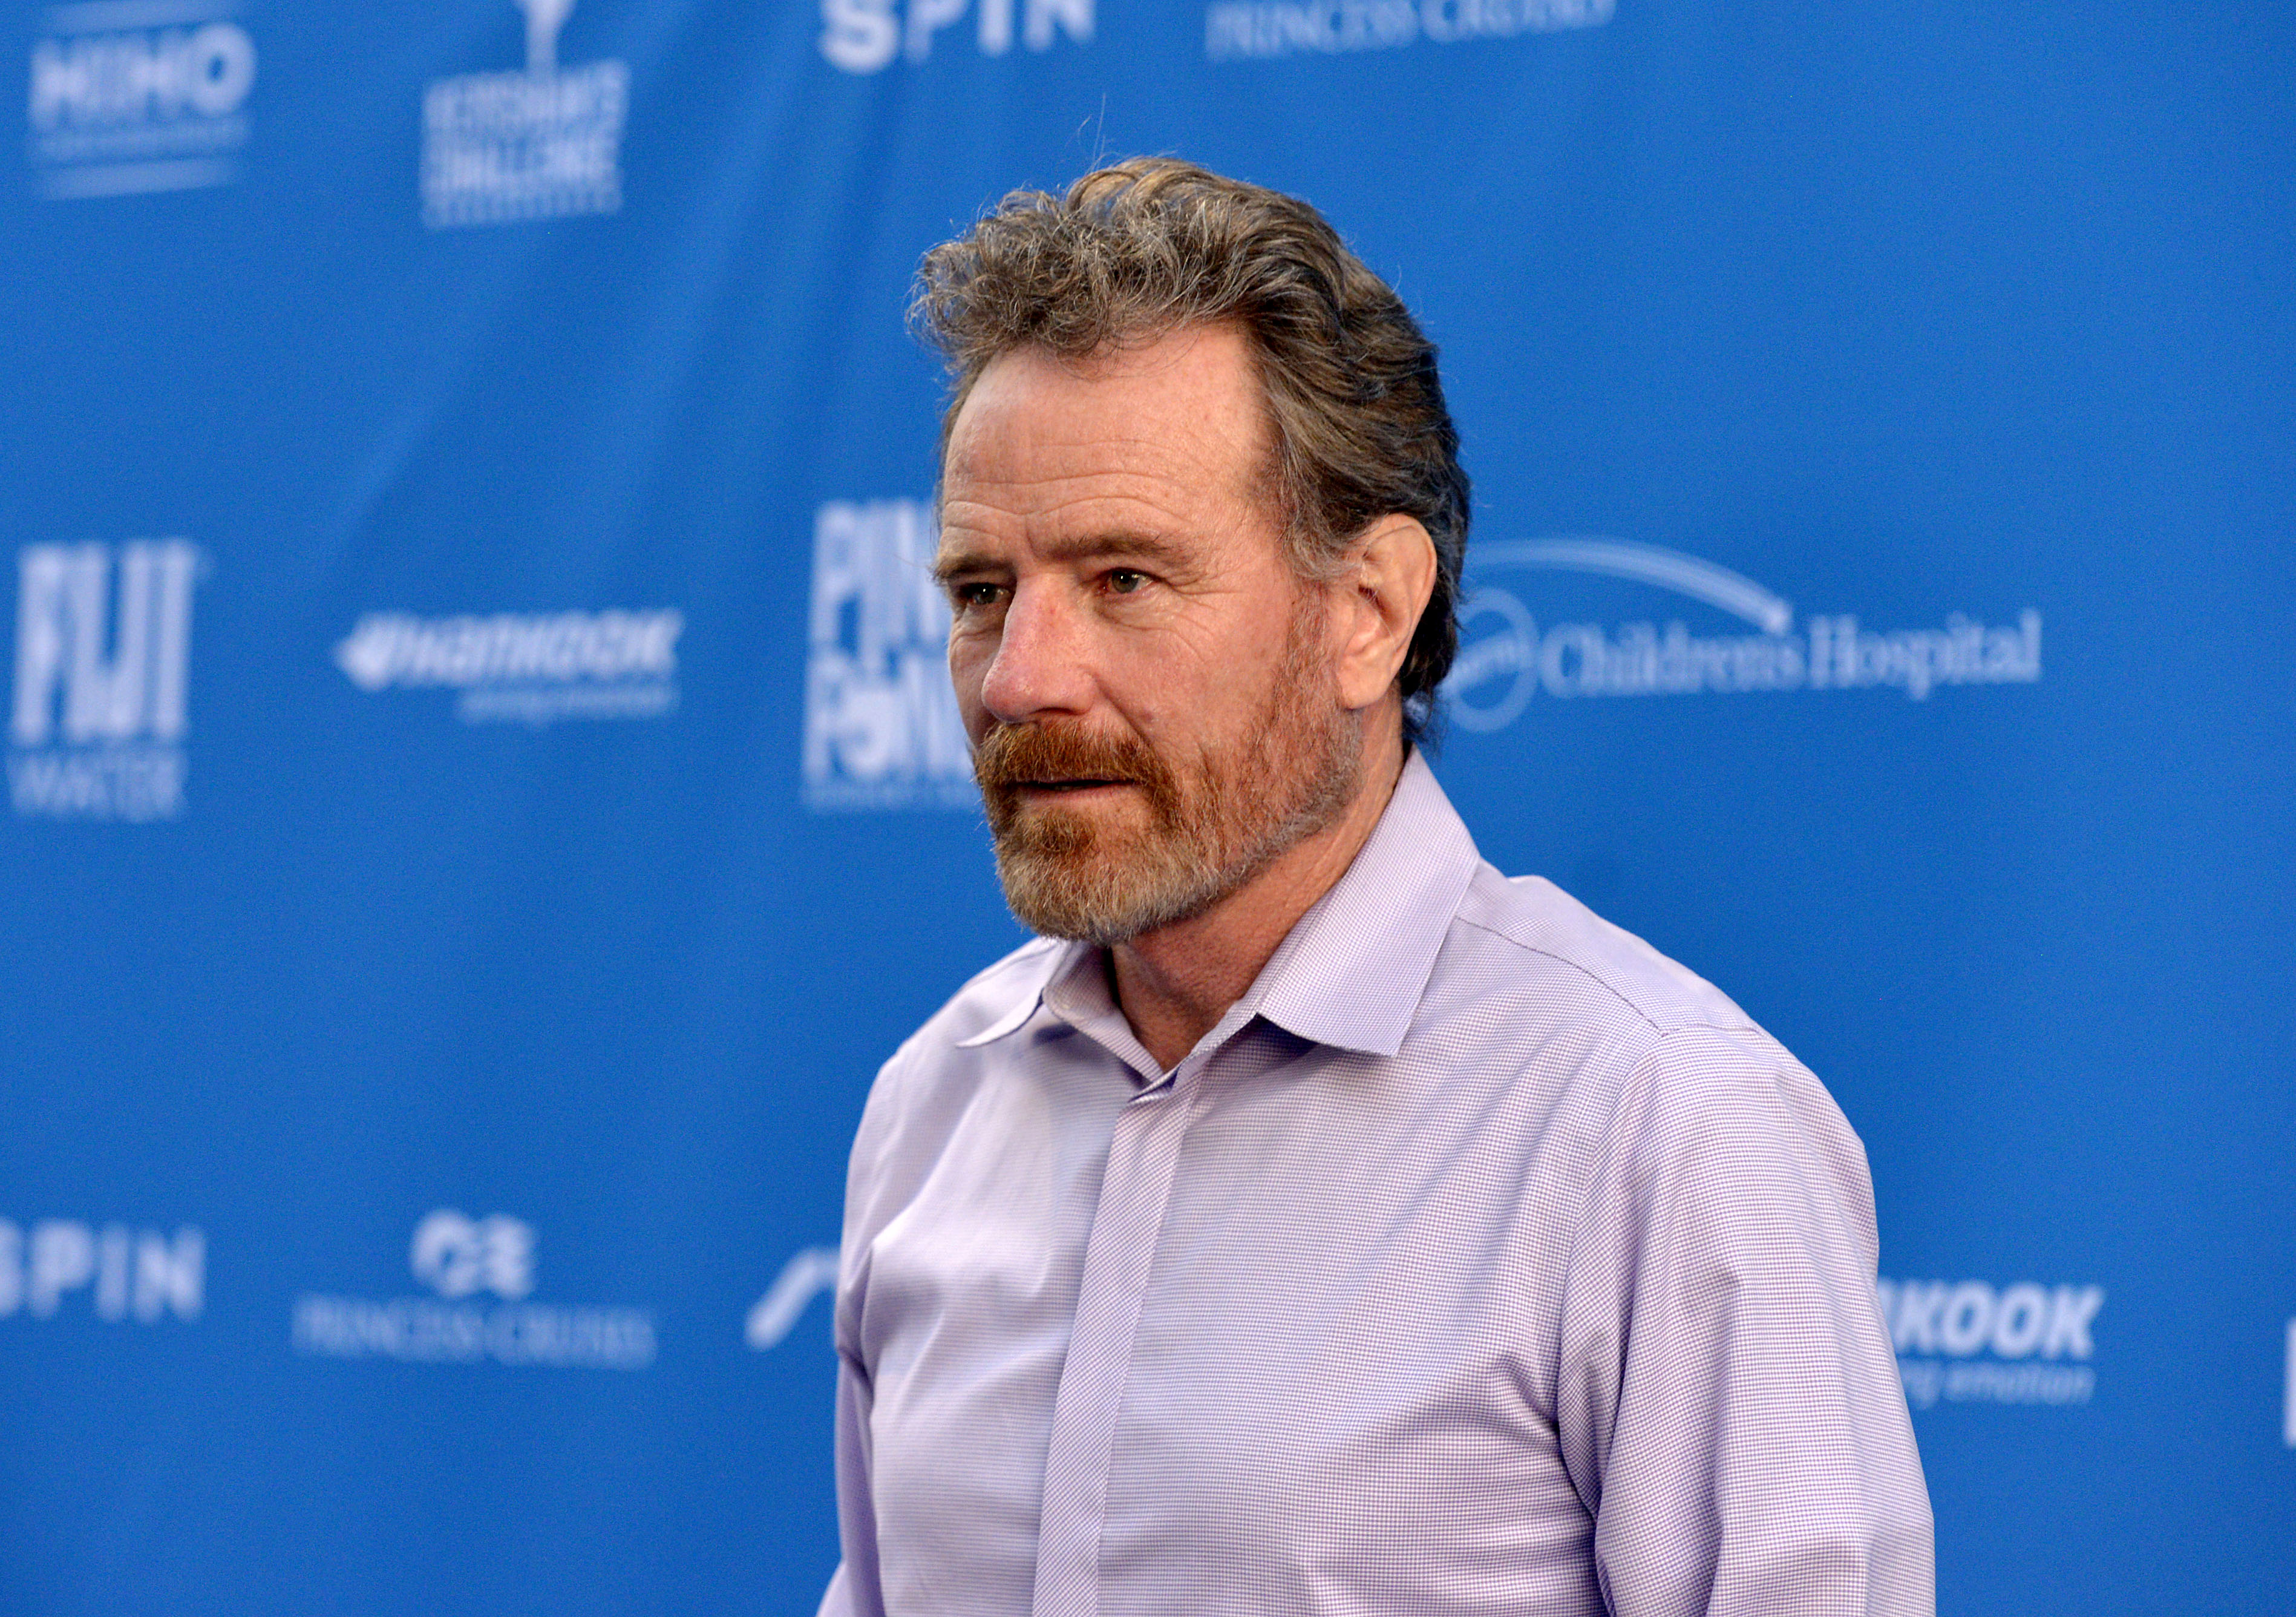 Bryan Cranston attends a fundraiser in Los Angeles in August 2019.